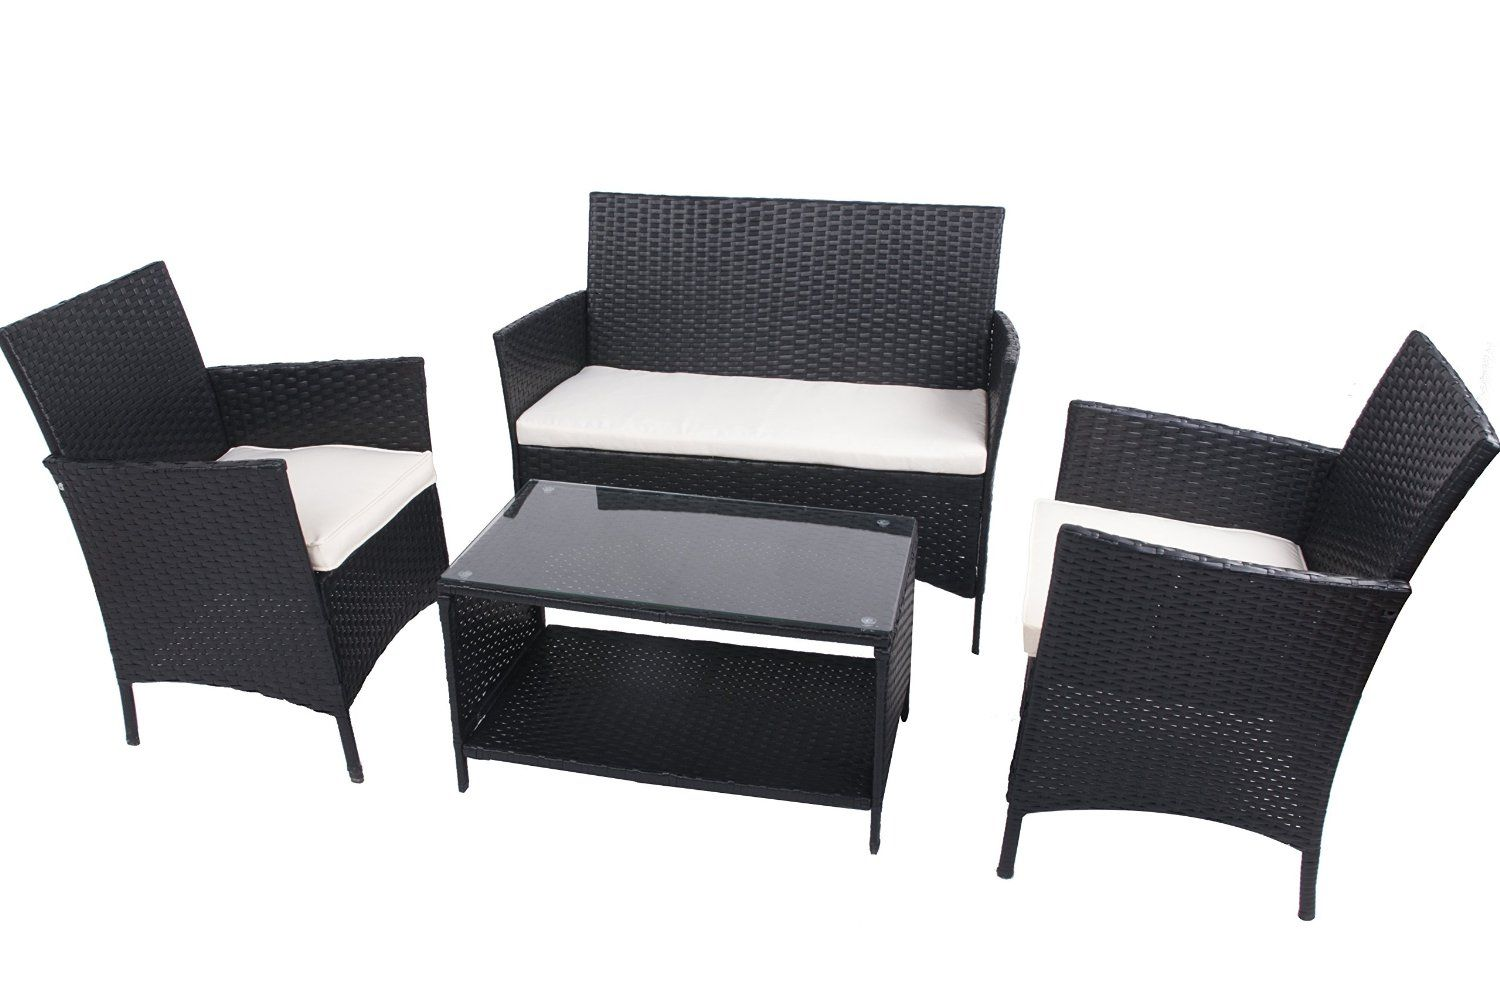 140 Btm Rattan Garden Furniture Sets Patio Furniture Set Garden